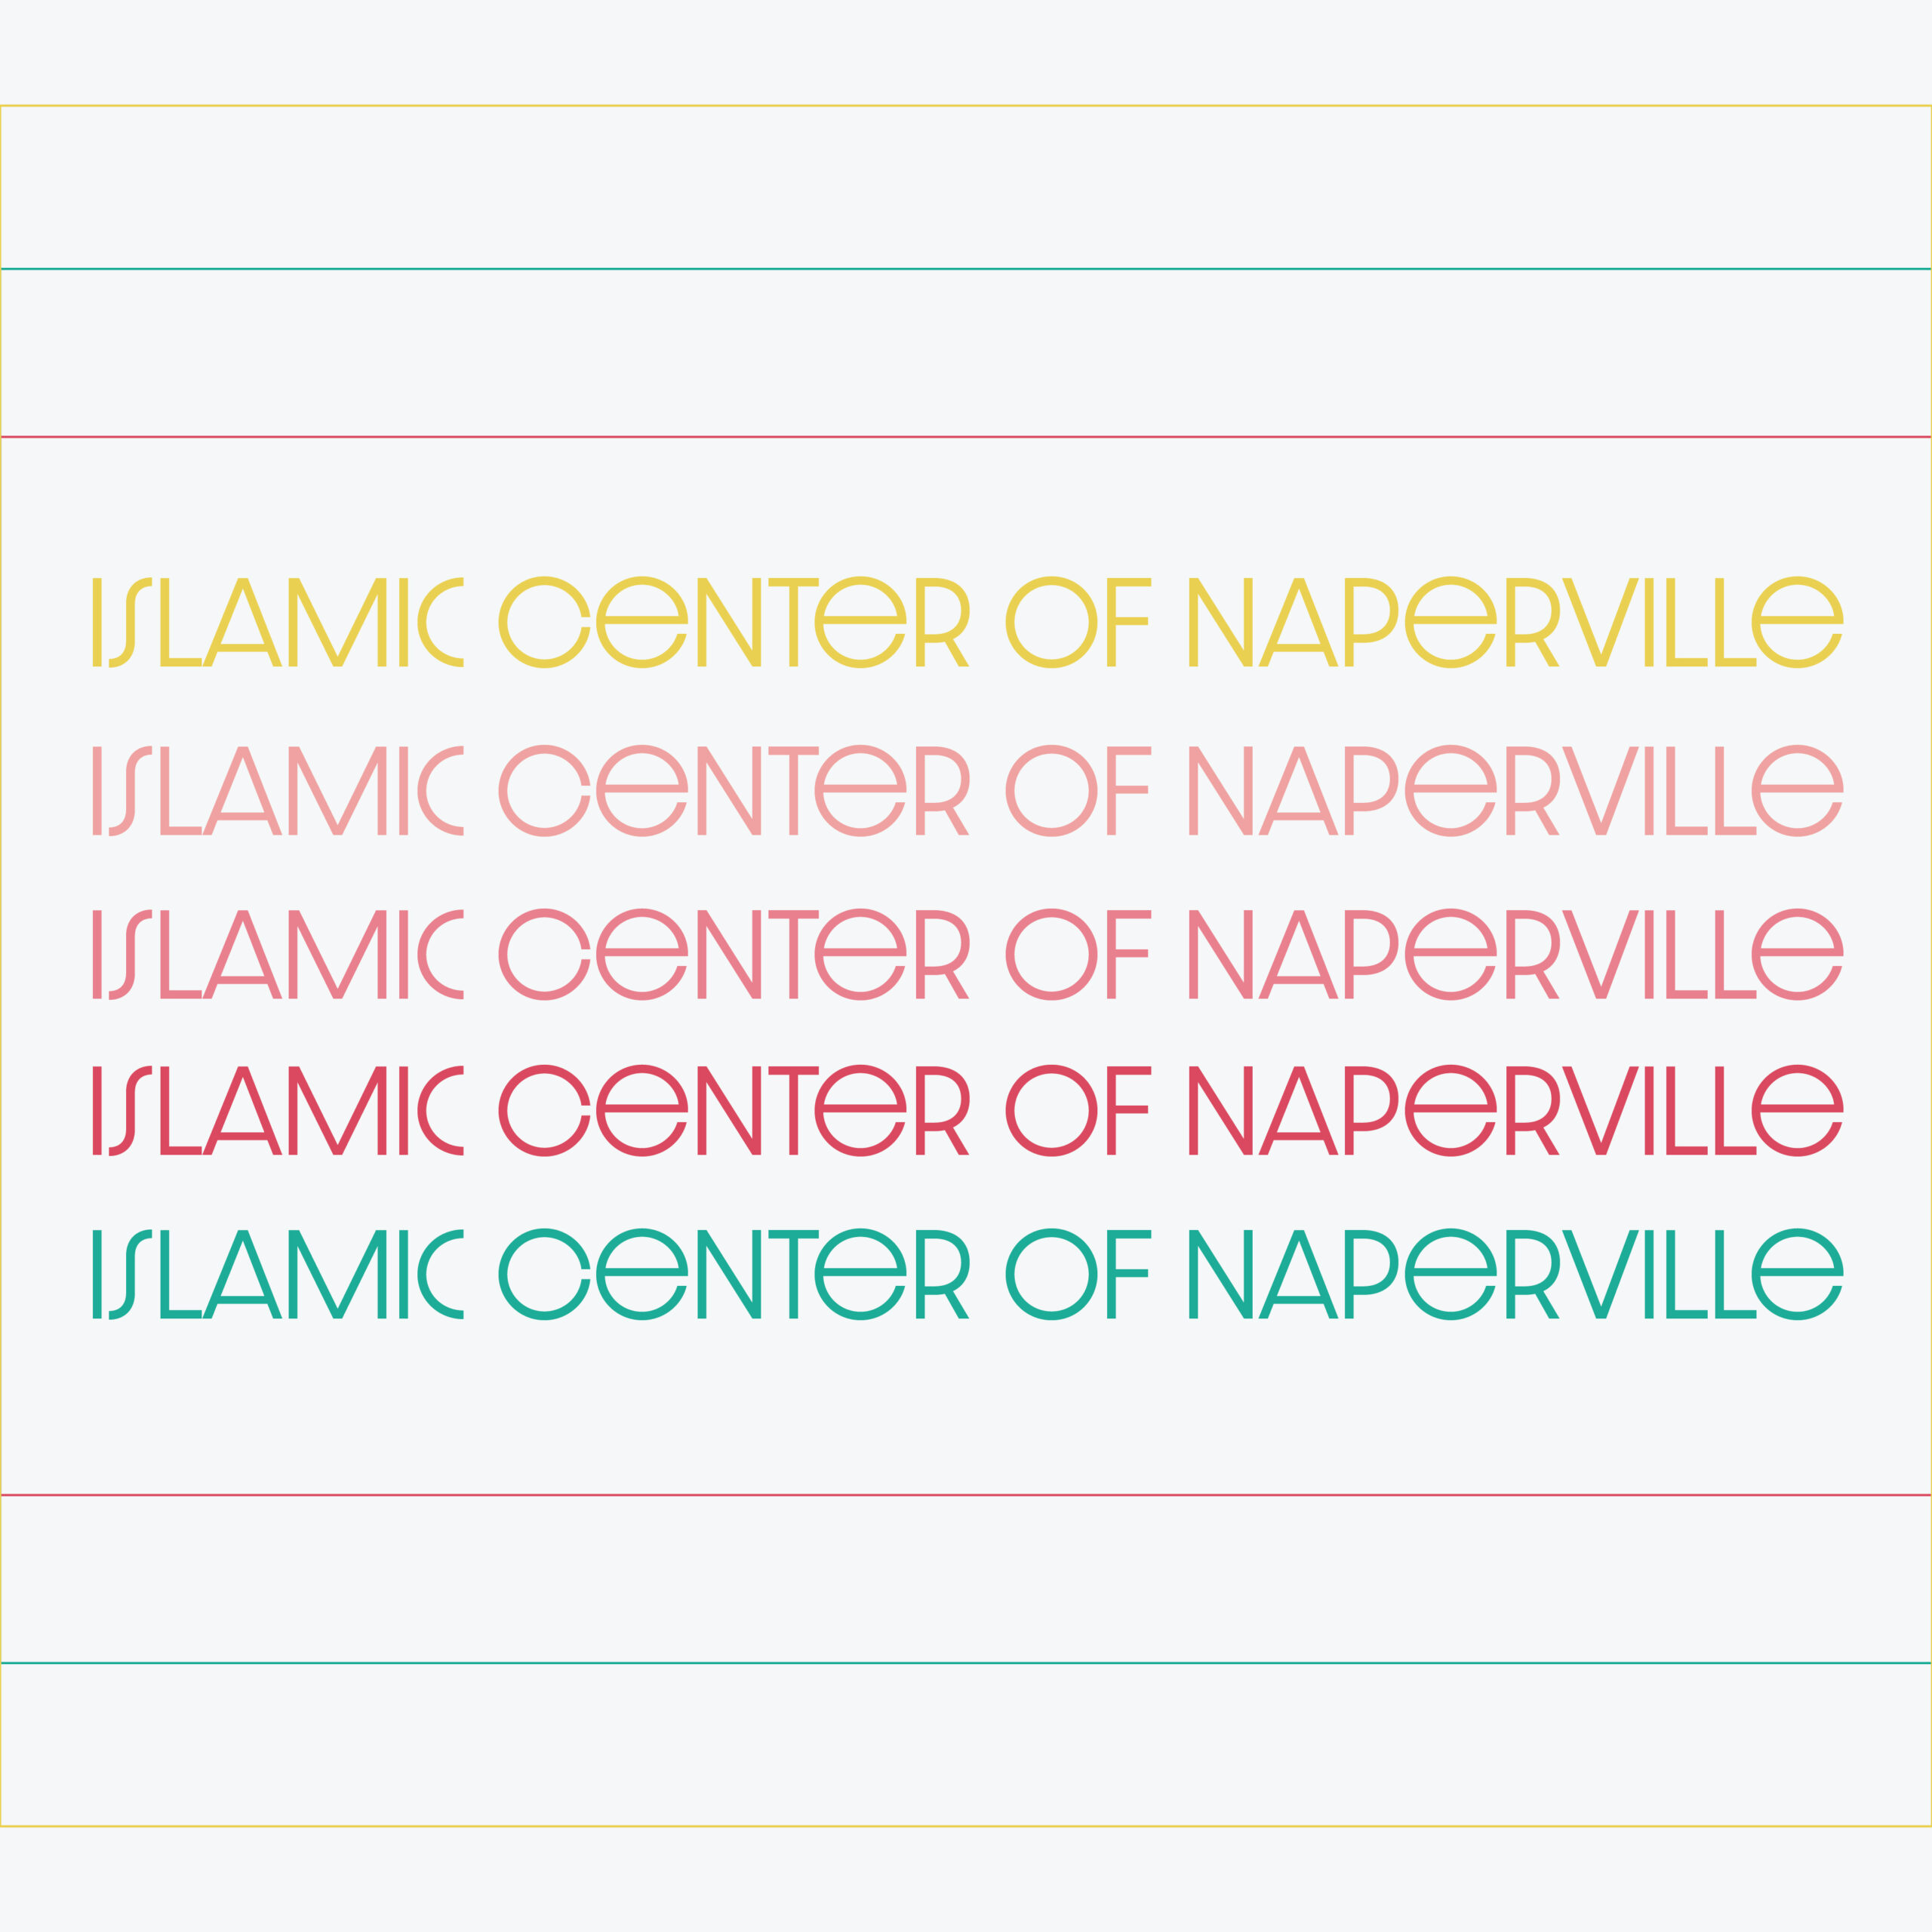 Naperville resident weighs in on ICN's mosque proposal